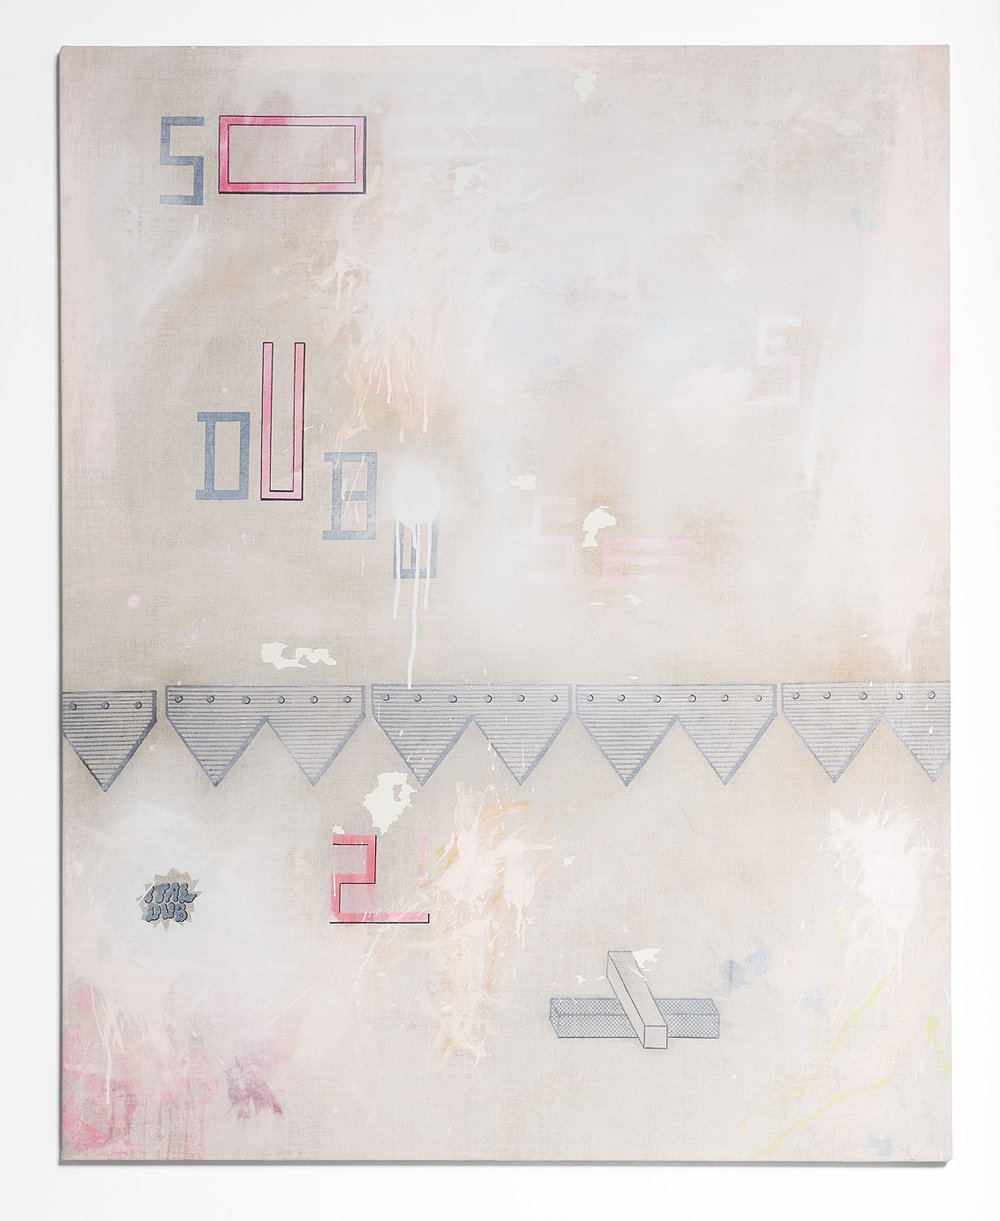 SARAH crowEST  SO DUB  2018 (#2 peach) acrylic on linen 127 × 102 cm